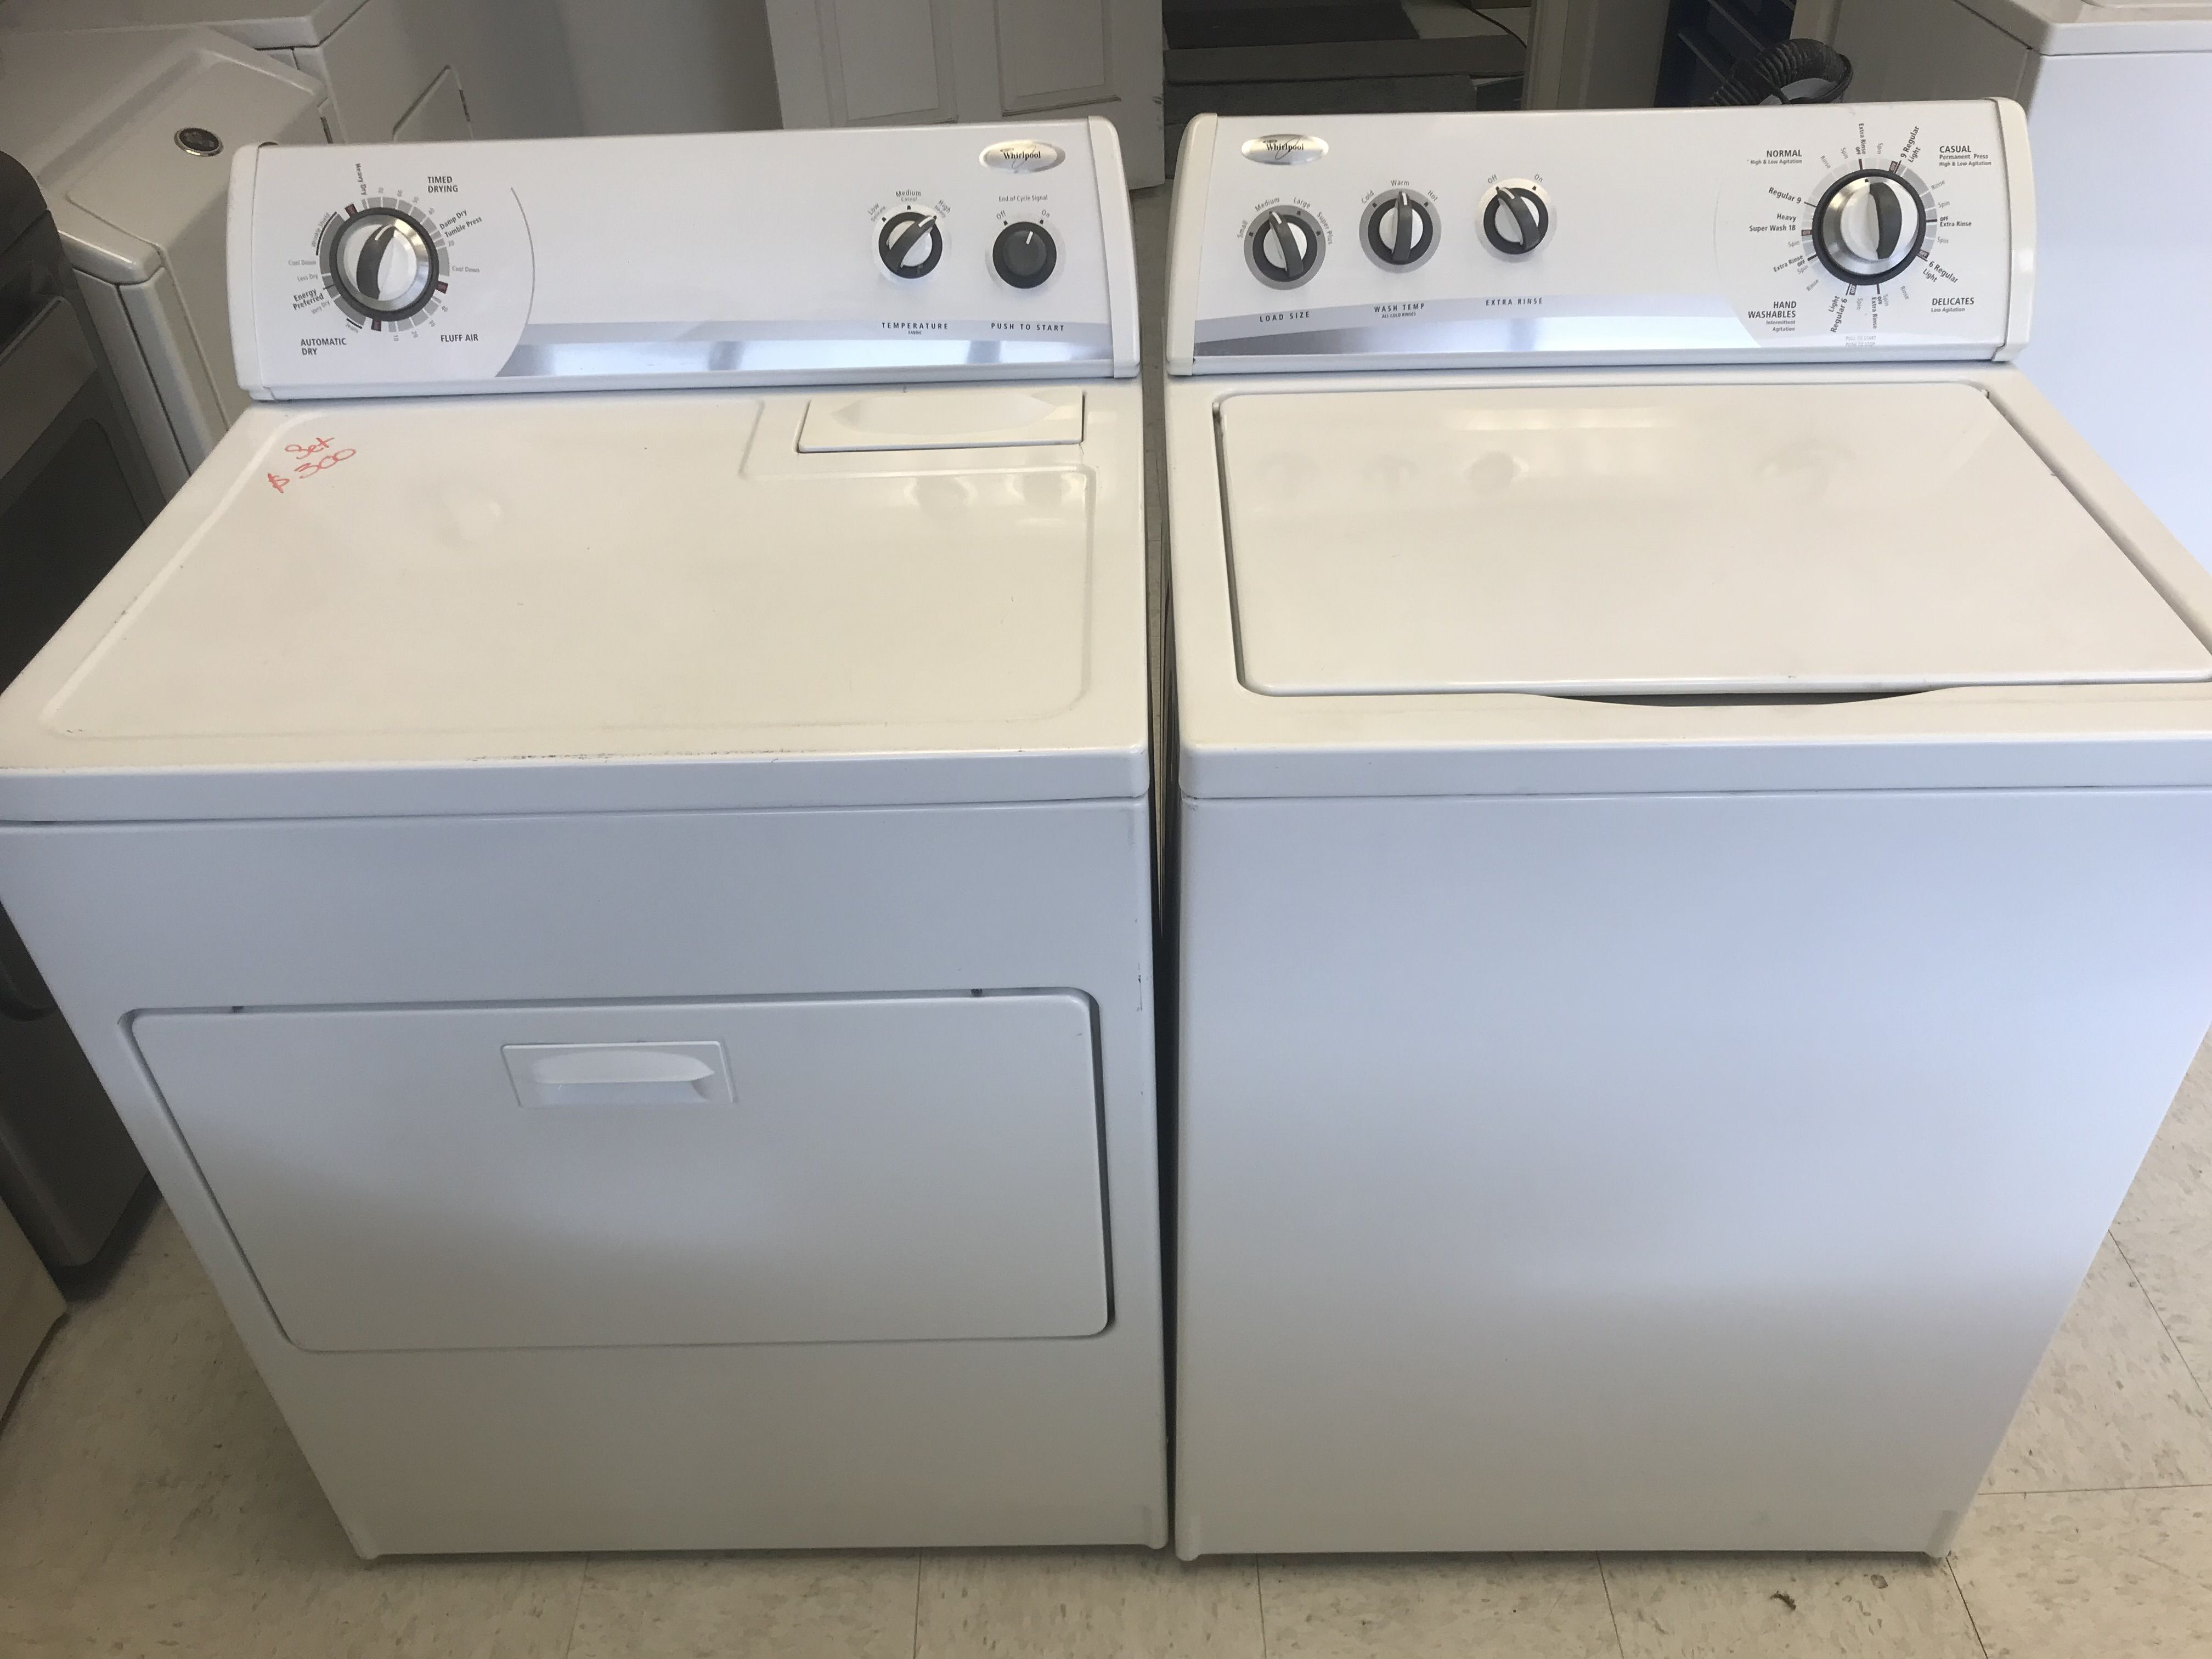 Whirlpool Washer And Dryer Whirlpool Washer And Dryer Washer